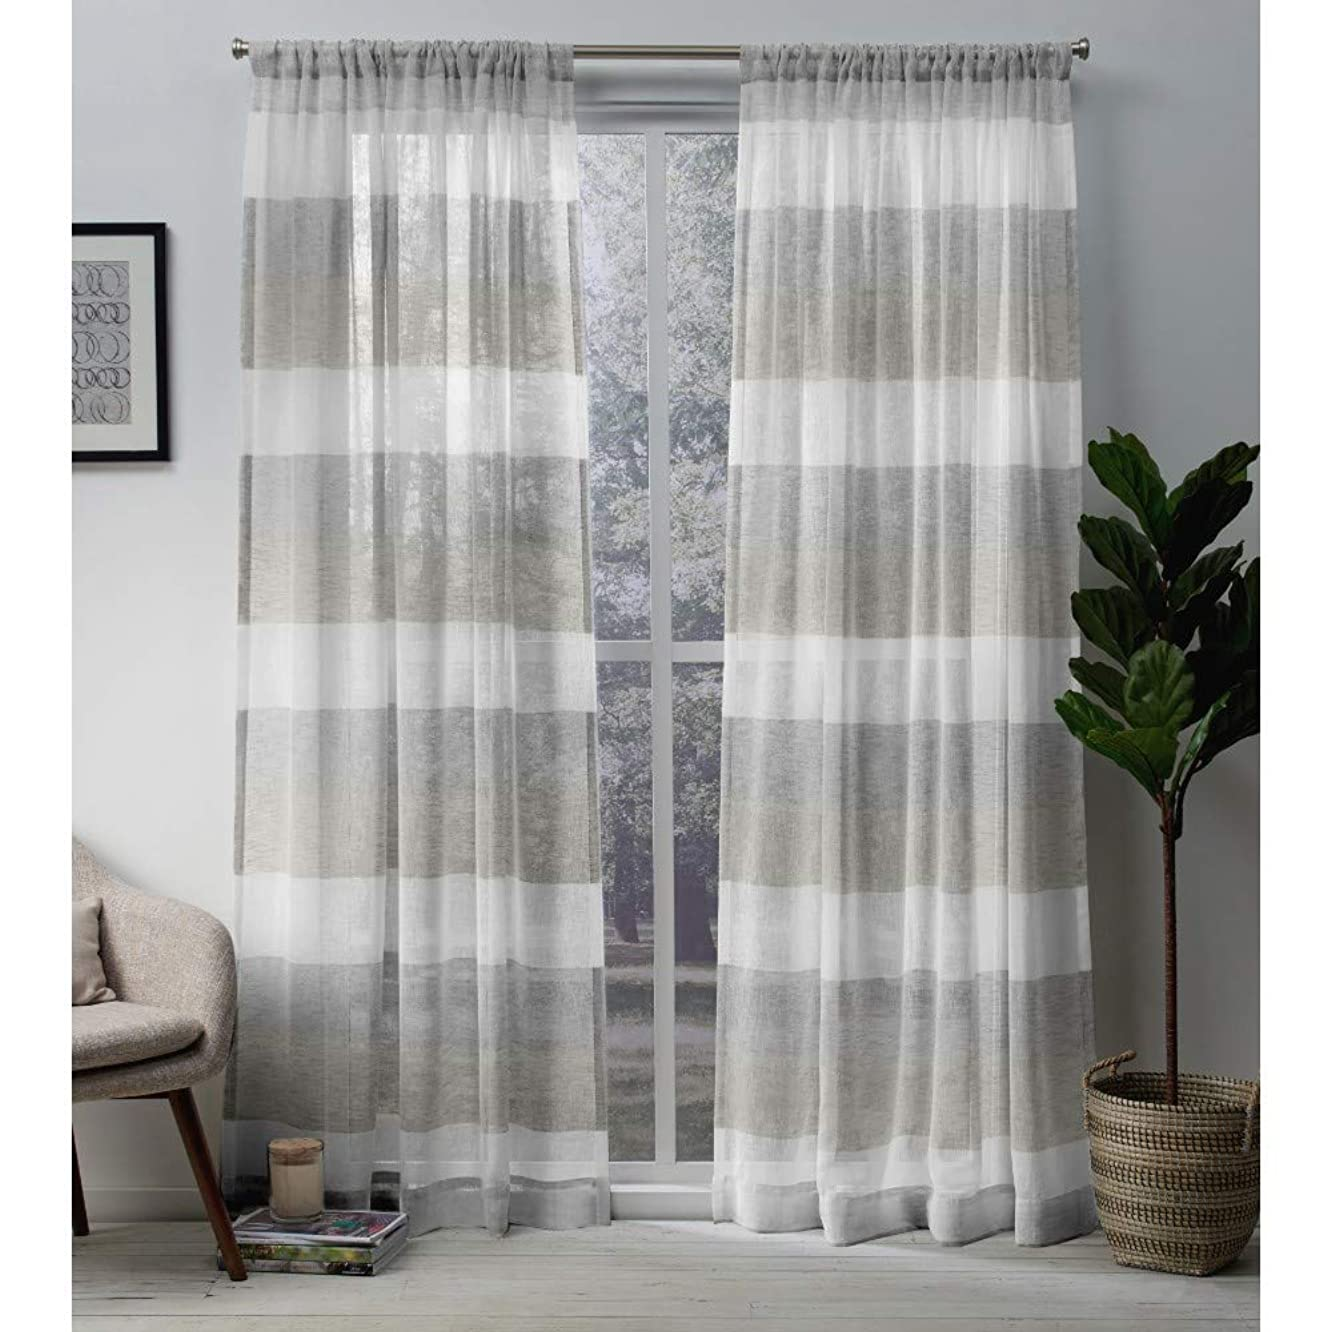 Exclusive Home Curtains Bern Stripe Sheer Window Curtain Panel Pair with Rod Pocket, 54x108, Dove Grey, 2 Piece